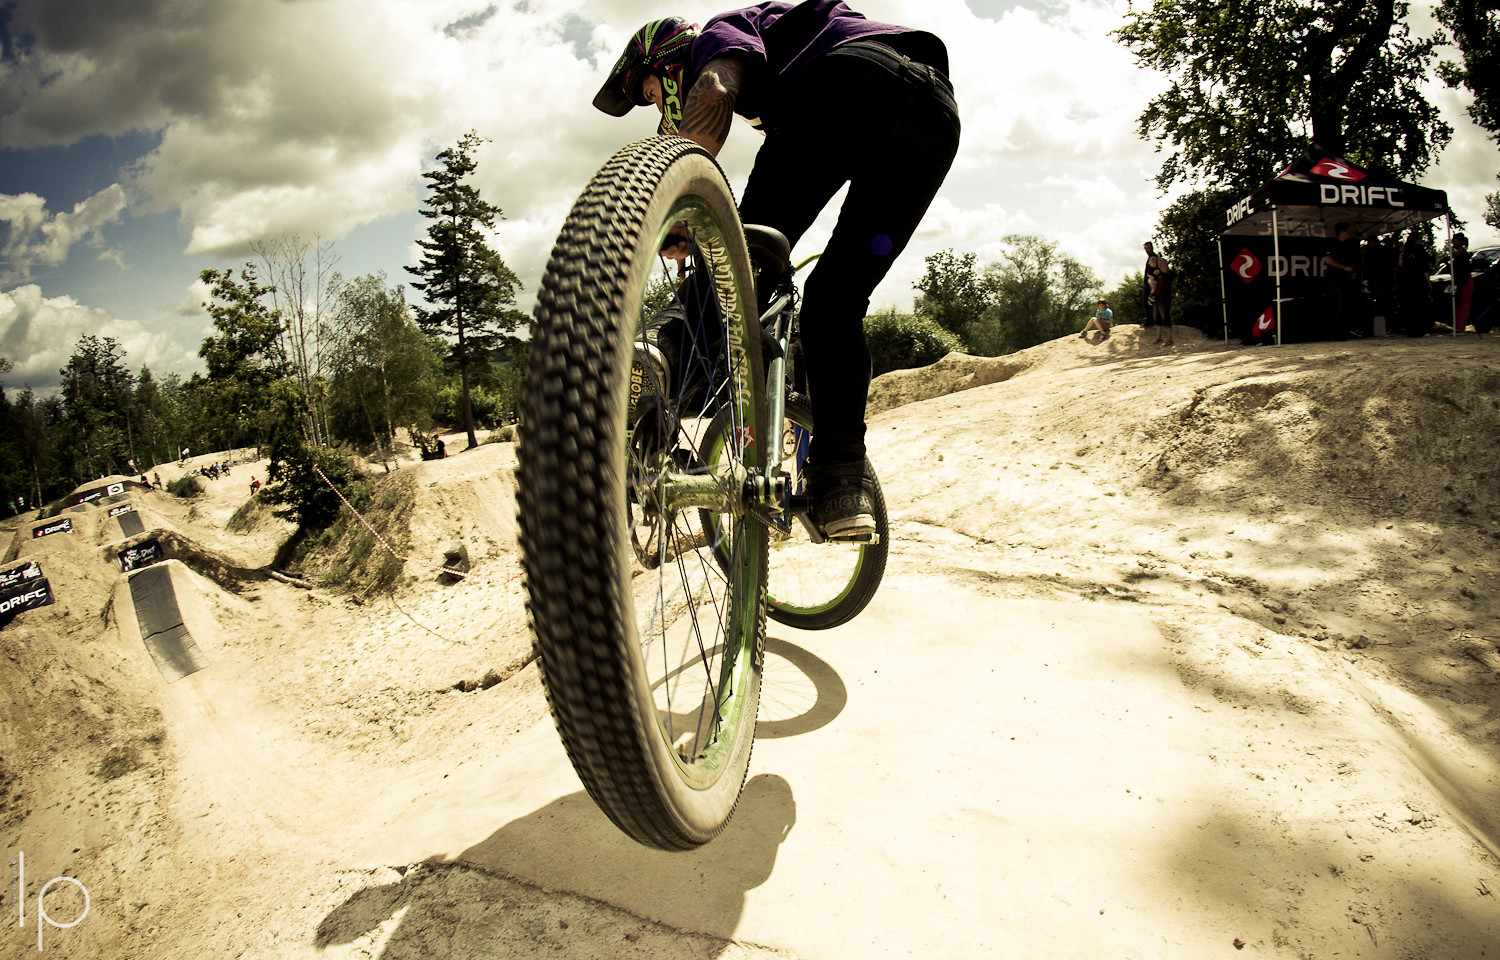 Getting close to the action  - Declan_Lepage - Mountain Biking Pictures - Vital MTB